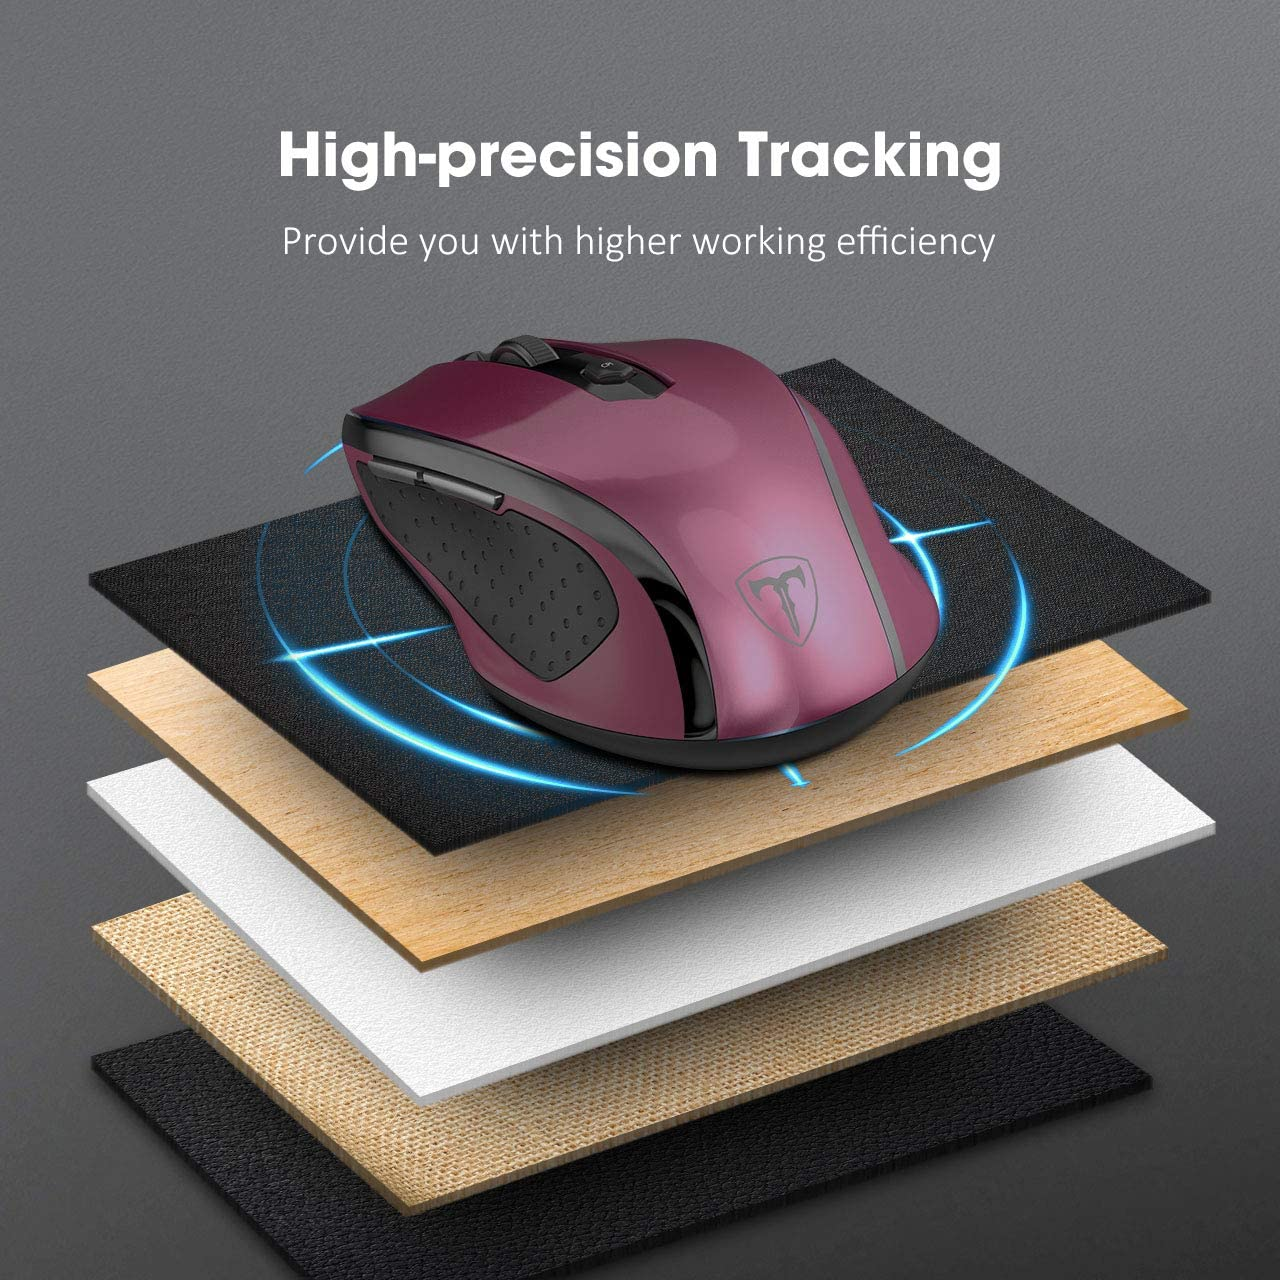 MacBook Computer Laptop PC 5 Adjustable DPI Levels Dark red 6 Buttons for Notebook VicTsing MM057 2.4G Wireless Portable Mobile Mouse Optical Mice with USB Receiver